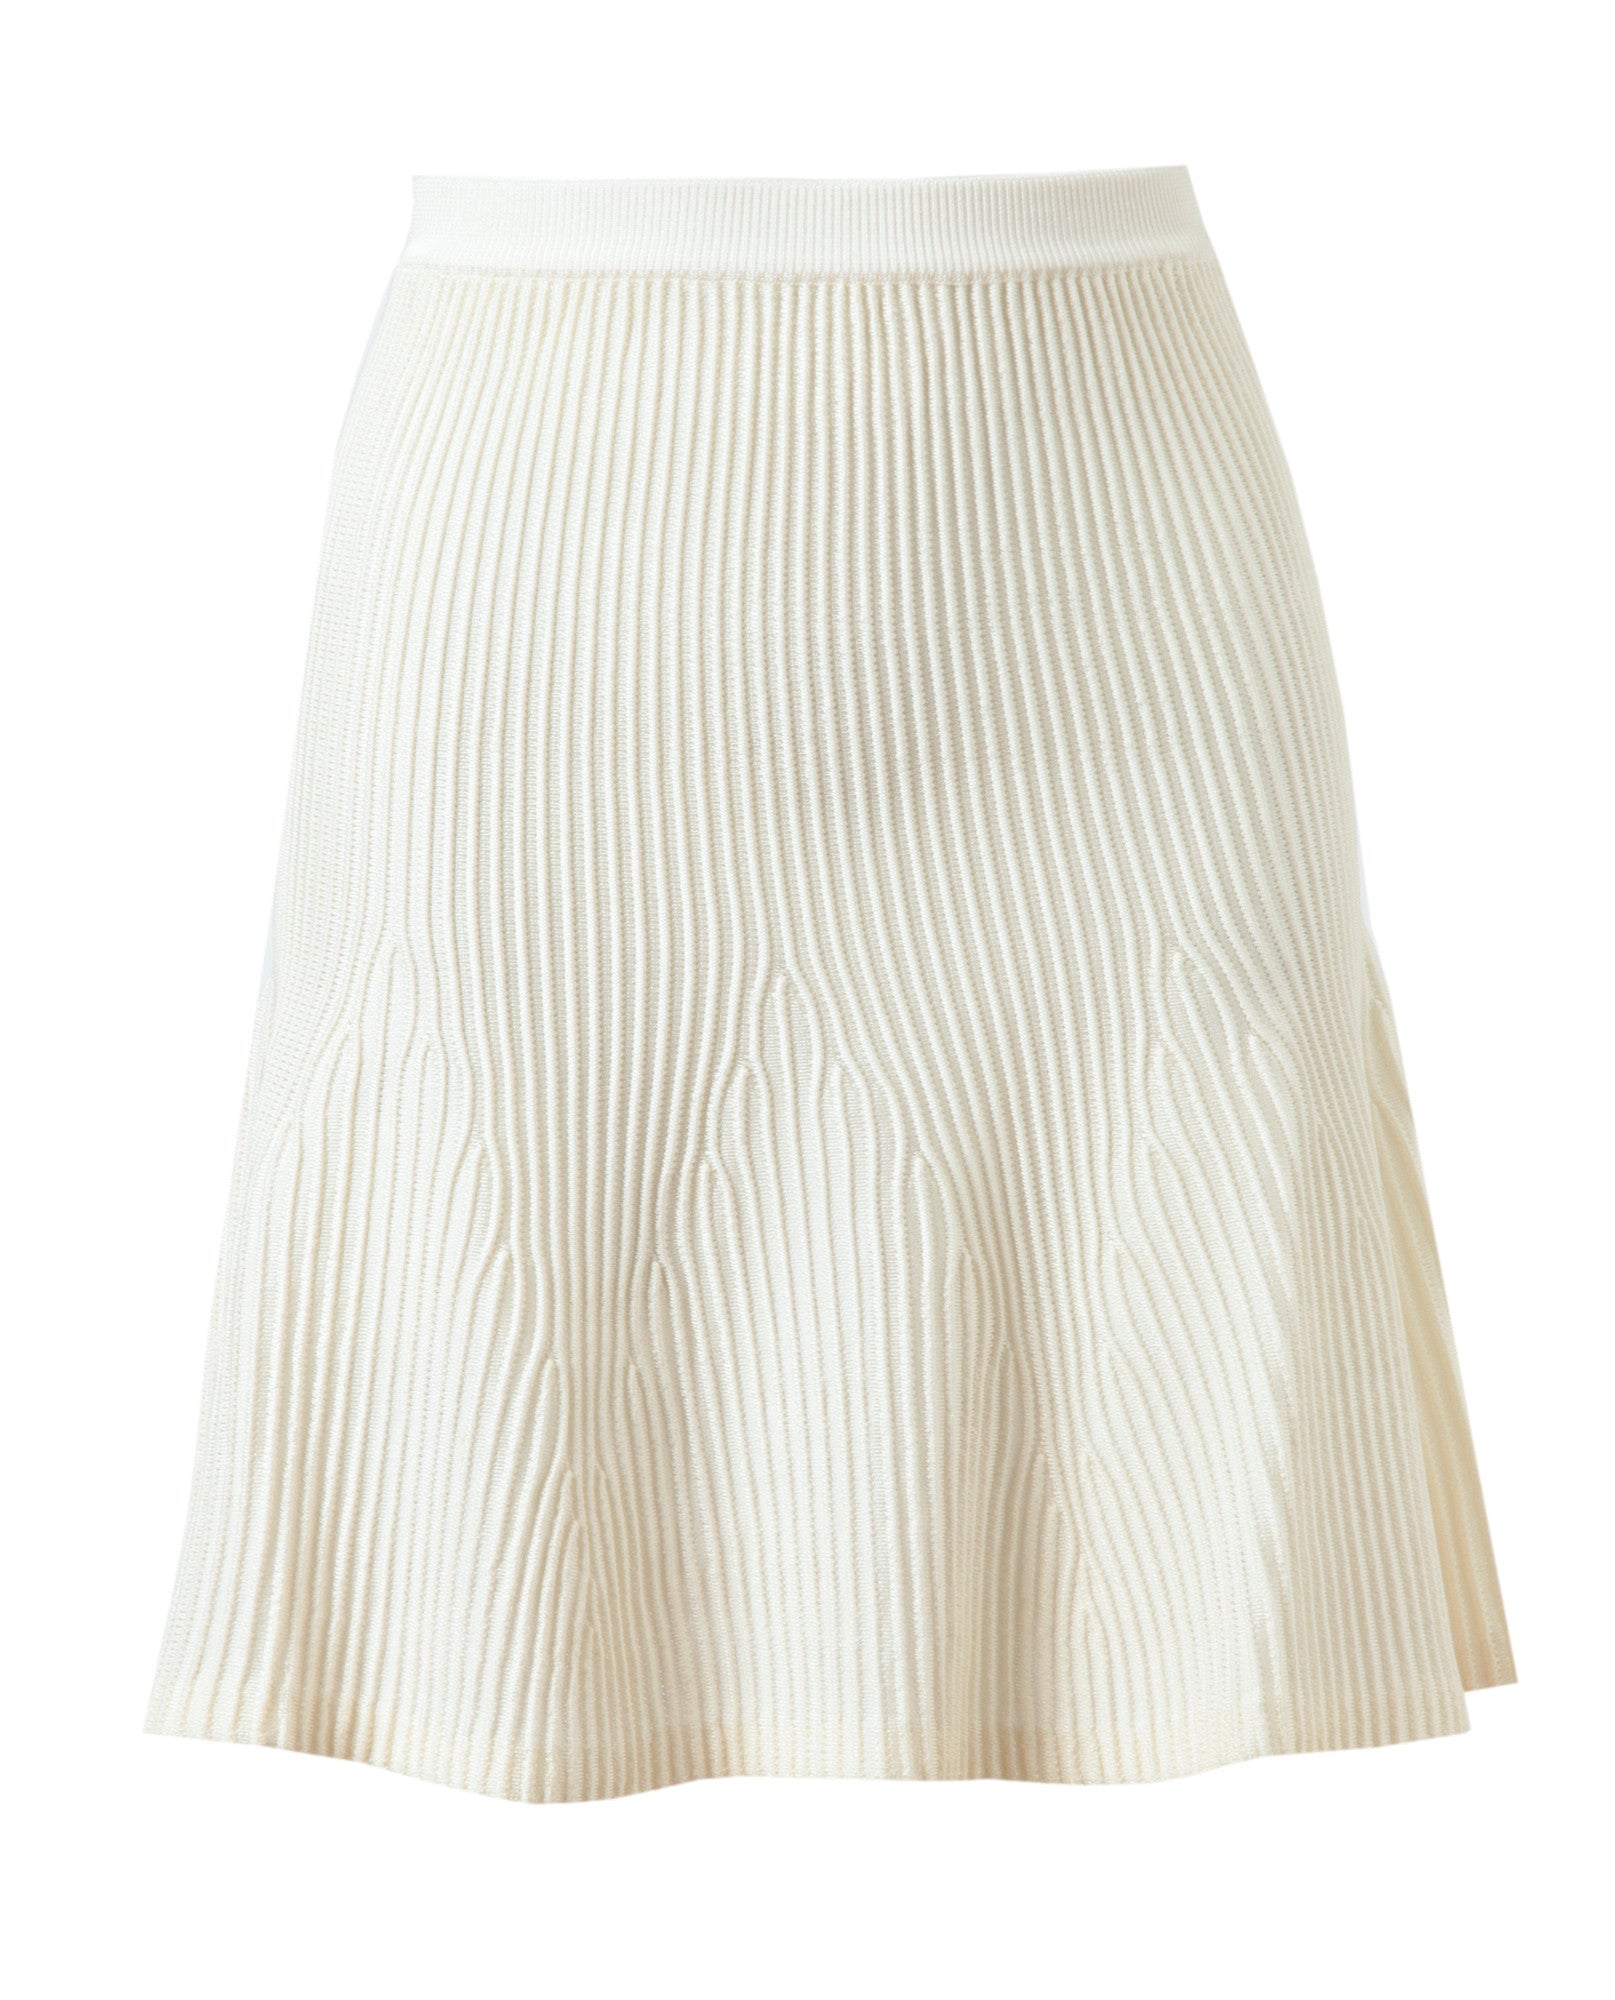 Ribbed Stretch Knit Skirt